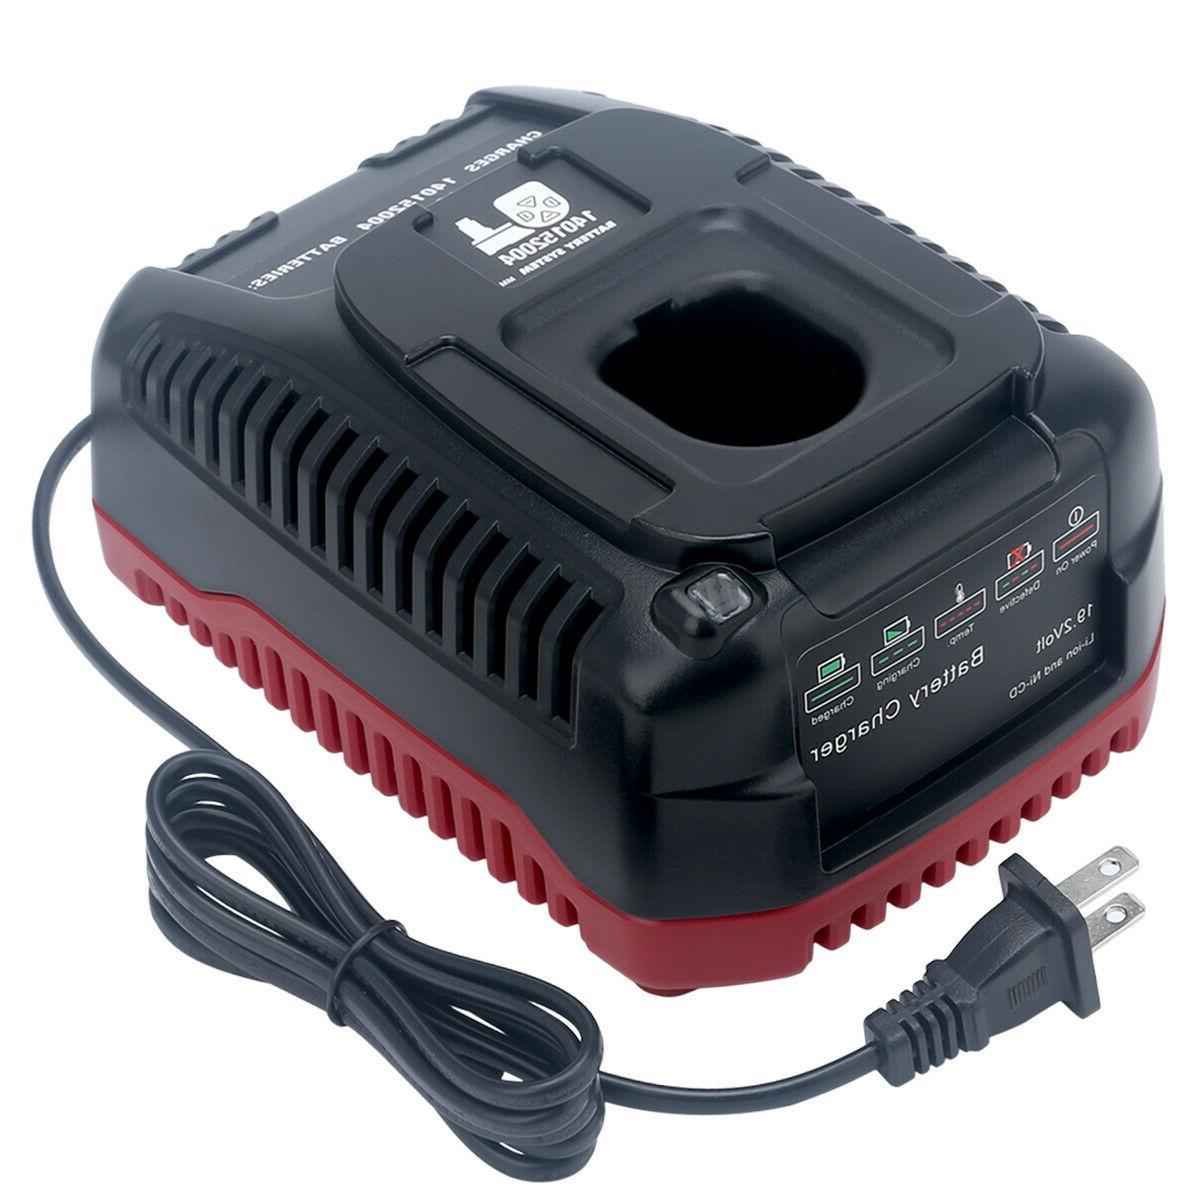 New Battery Charger for Craftsman C3 19.2V Ni-Cd & Lithium-I